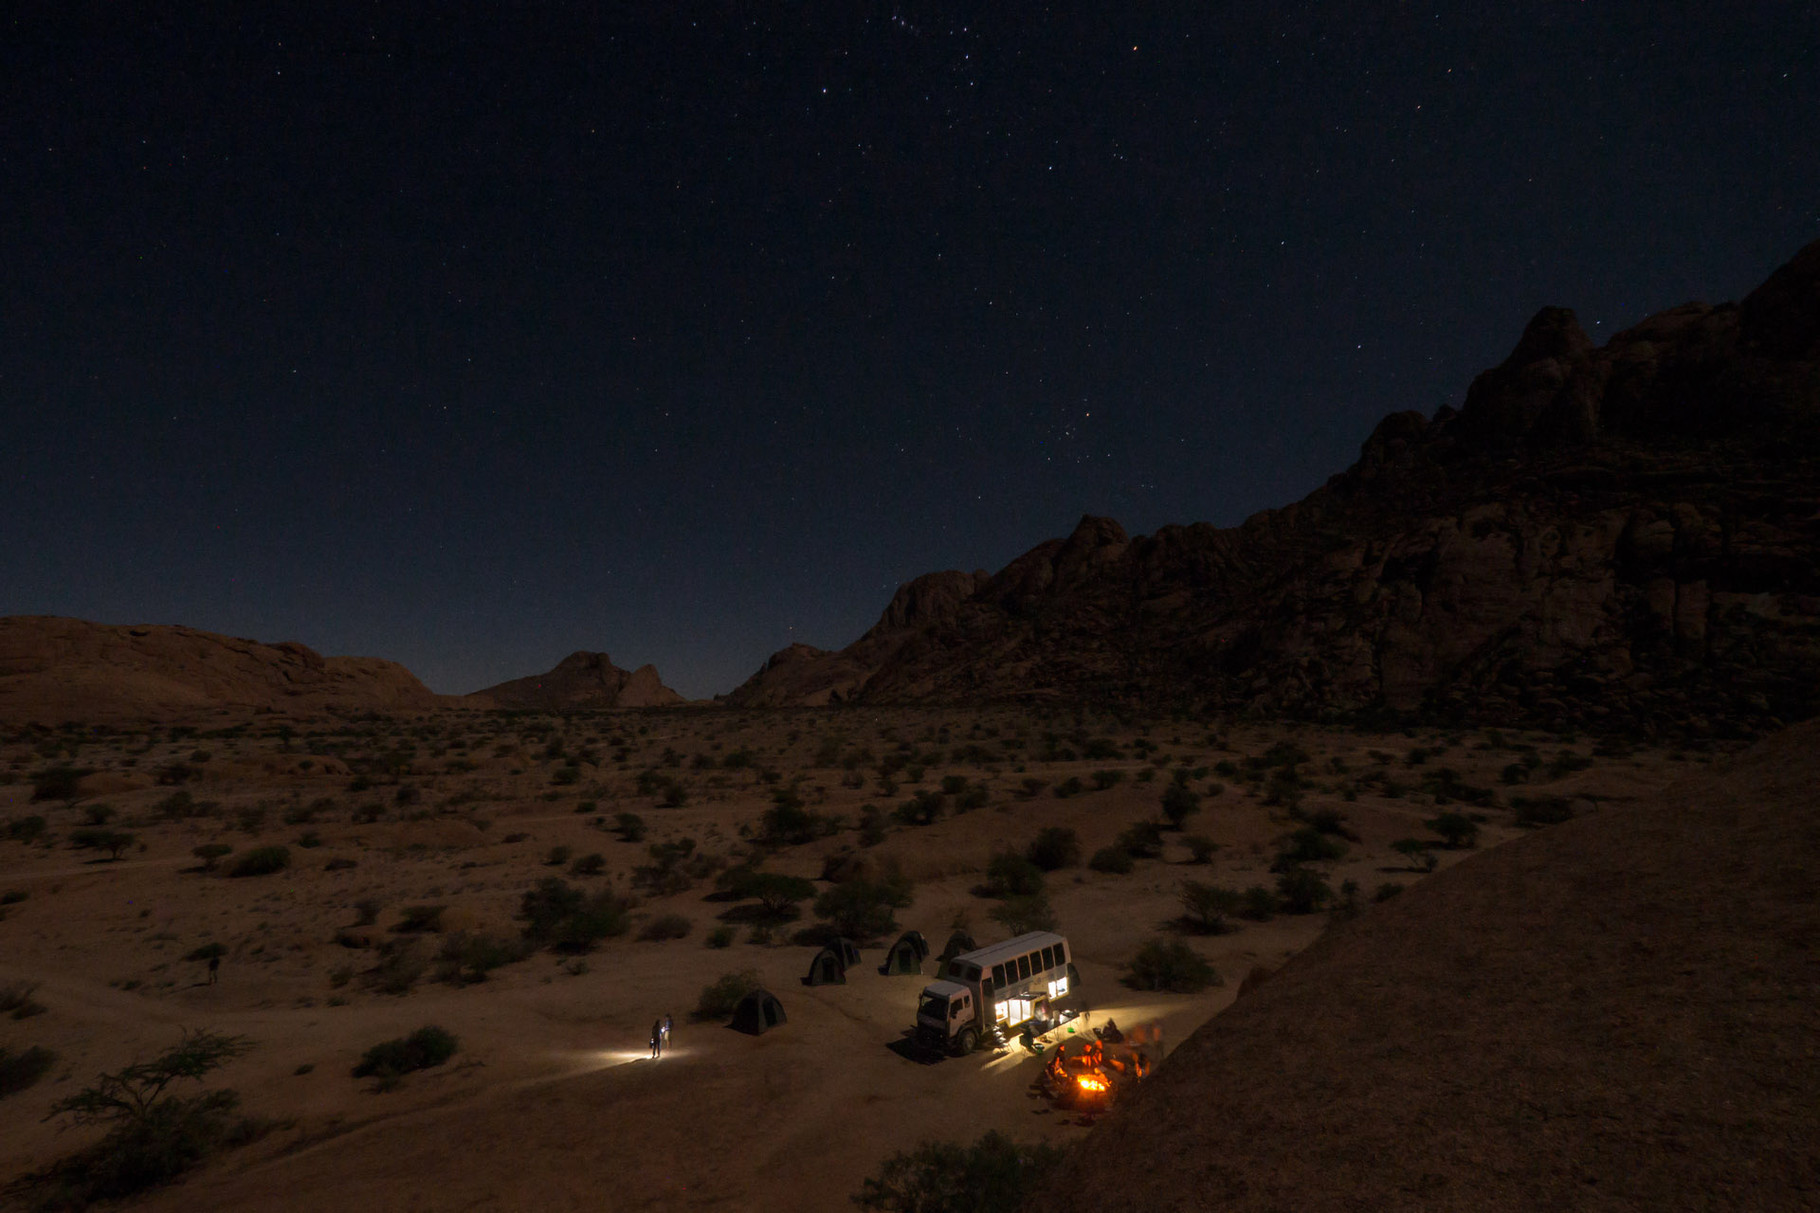 Our Overland truck at Spitzkoppe